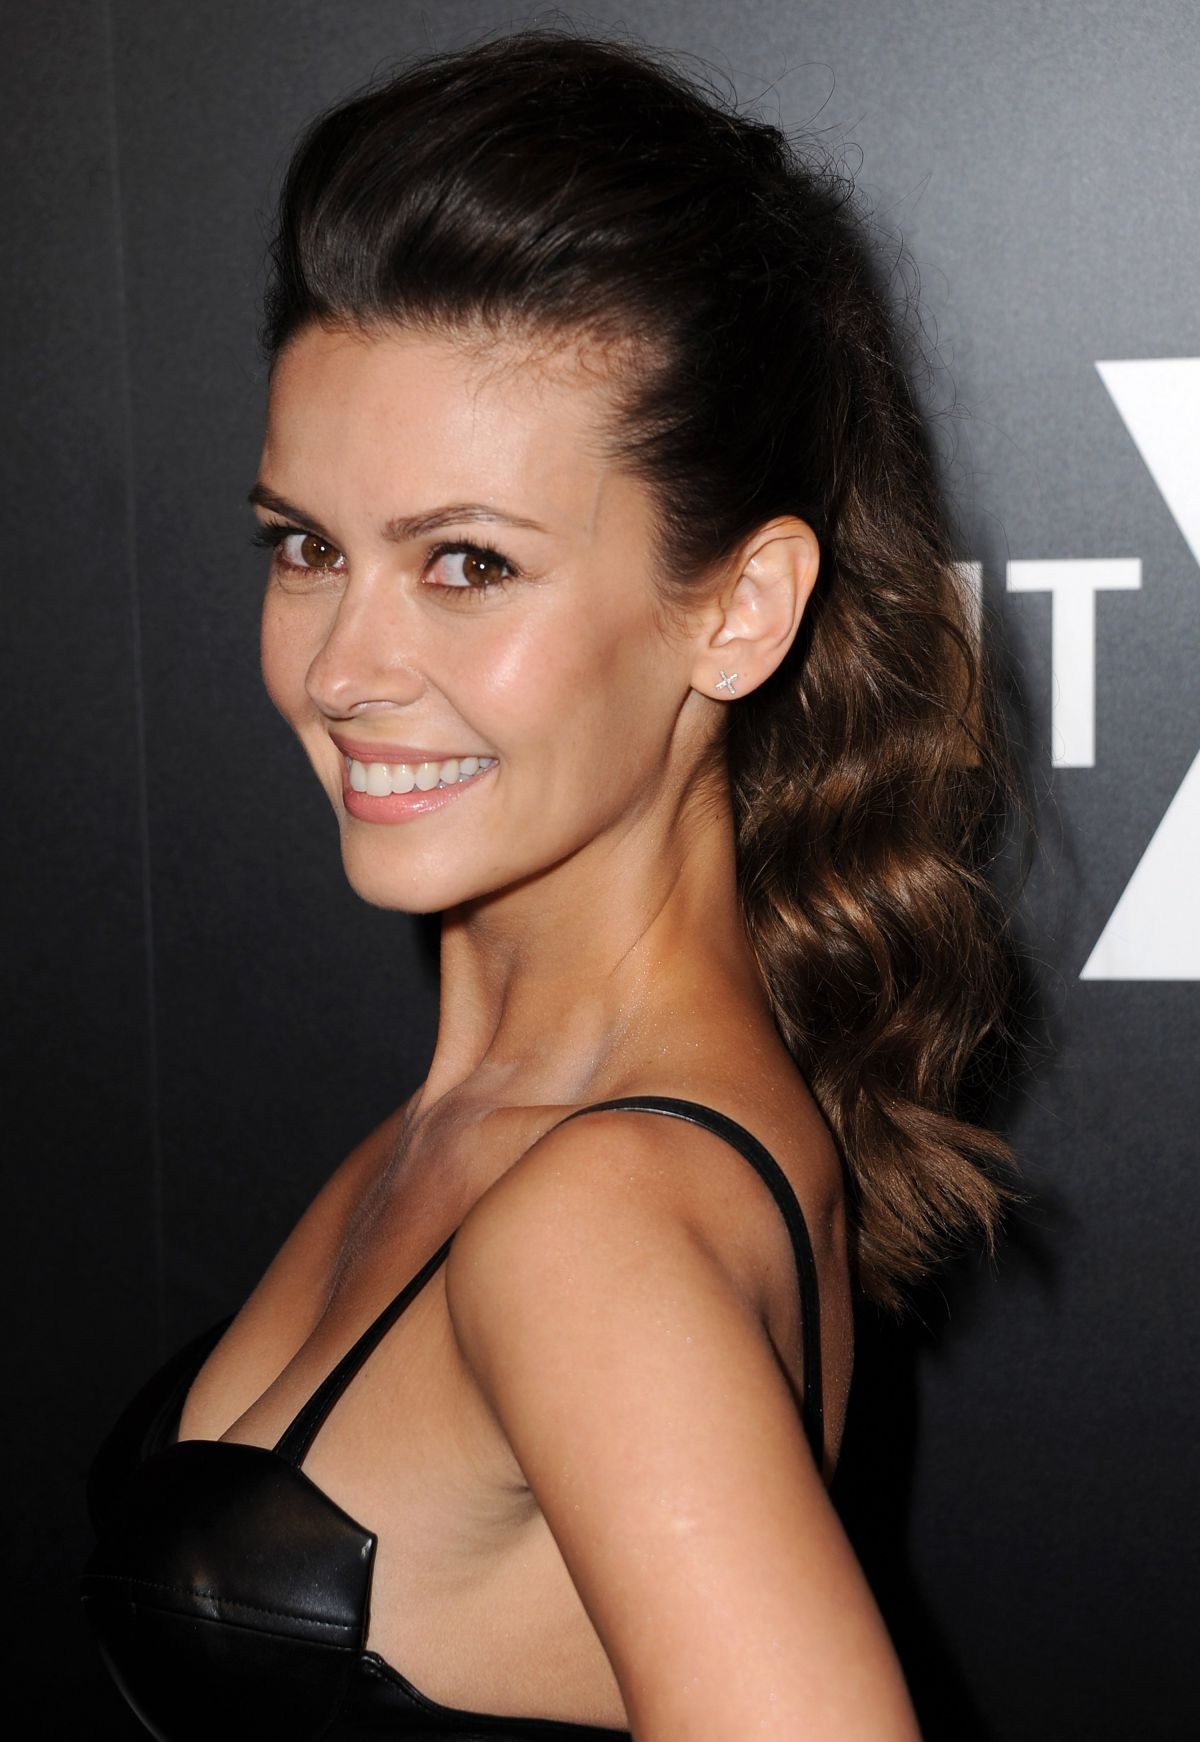 olga fonda measurementolga fonda twitter, olga fonda photoshoot, olga fonda esquire, olga fonda how i met your mother, olga fonda wikipedia, olga fonda bellazon, olga fonda instagram, olga fonda tumblr, olga fonda measurement, olga fonda, olga fonda wiki, olga fonda imdb, olga fonda bio, olga fonda breaking dawn, olga fonda facebook